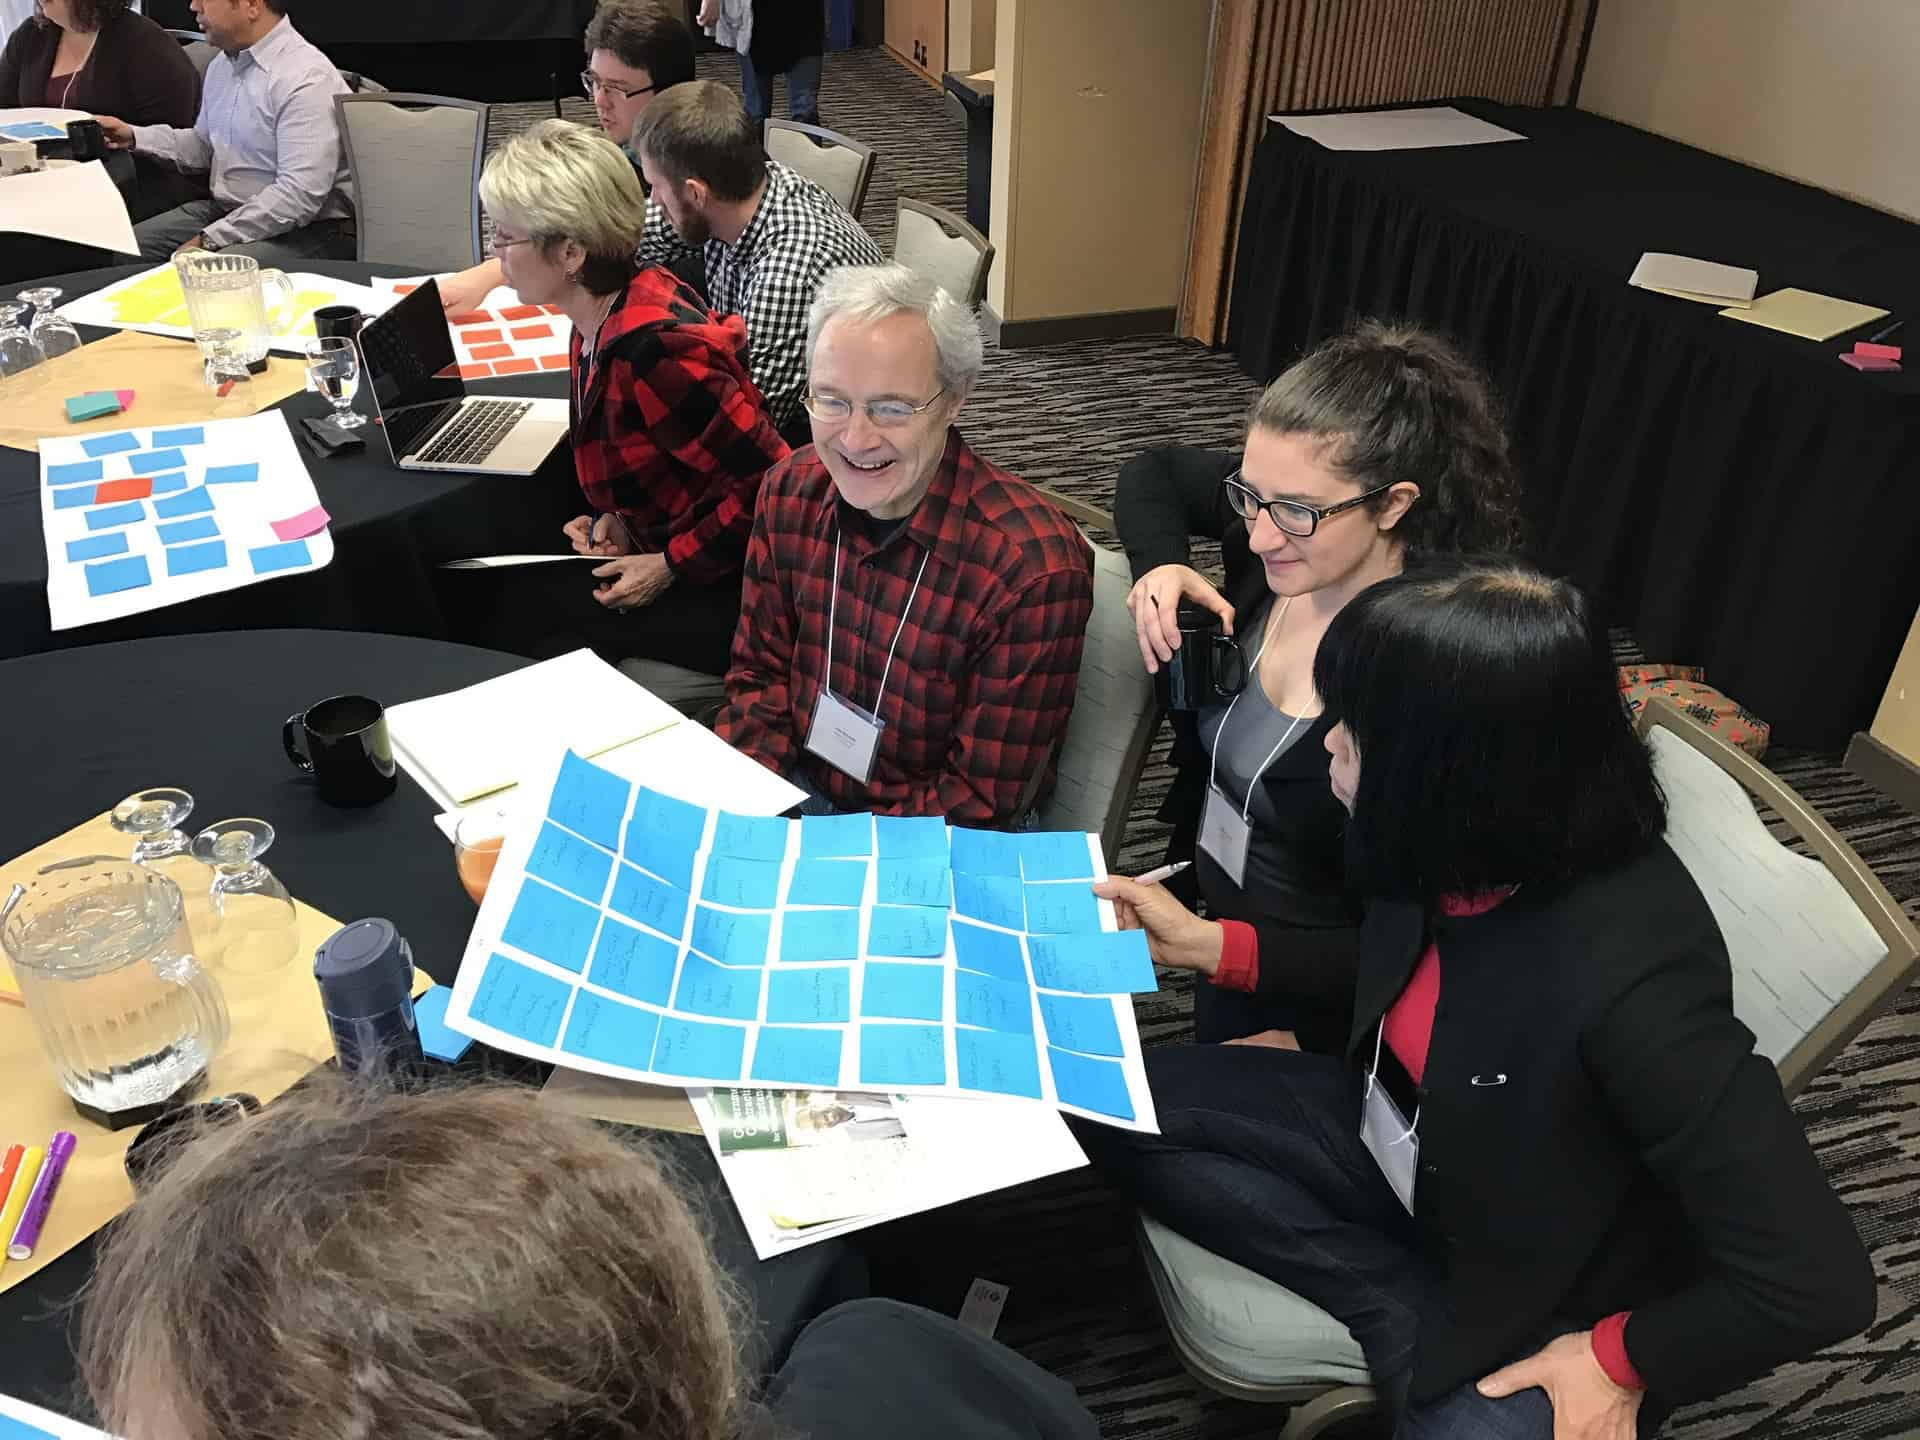 Workshop participants doing a mapping a long-term wildfire recovery planning activity with sticky-notes.